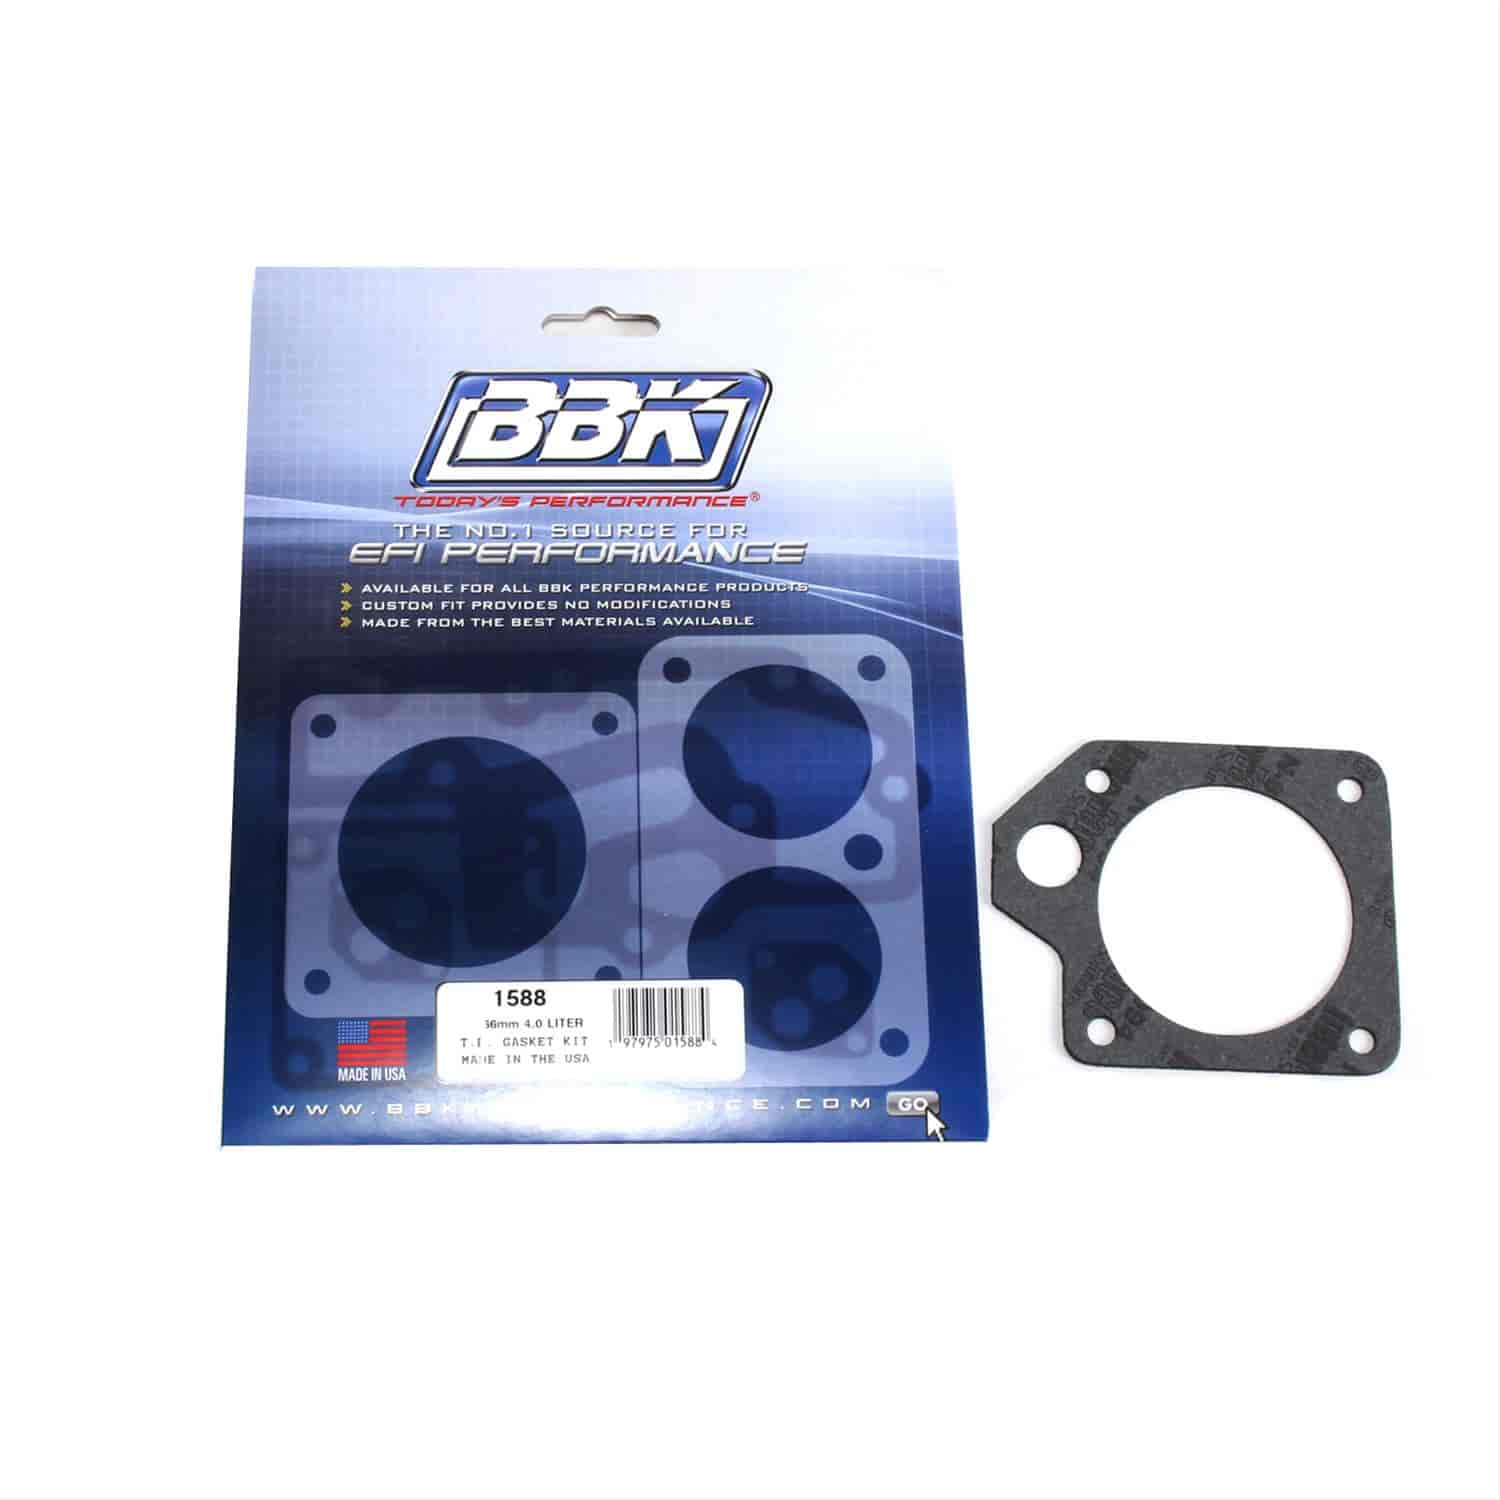 BBK Performance Products 1588 - BBK Throttle Body Gasket Kits